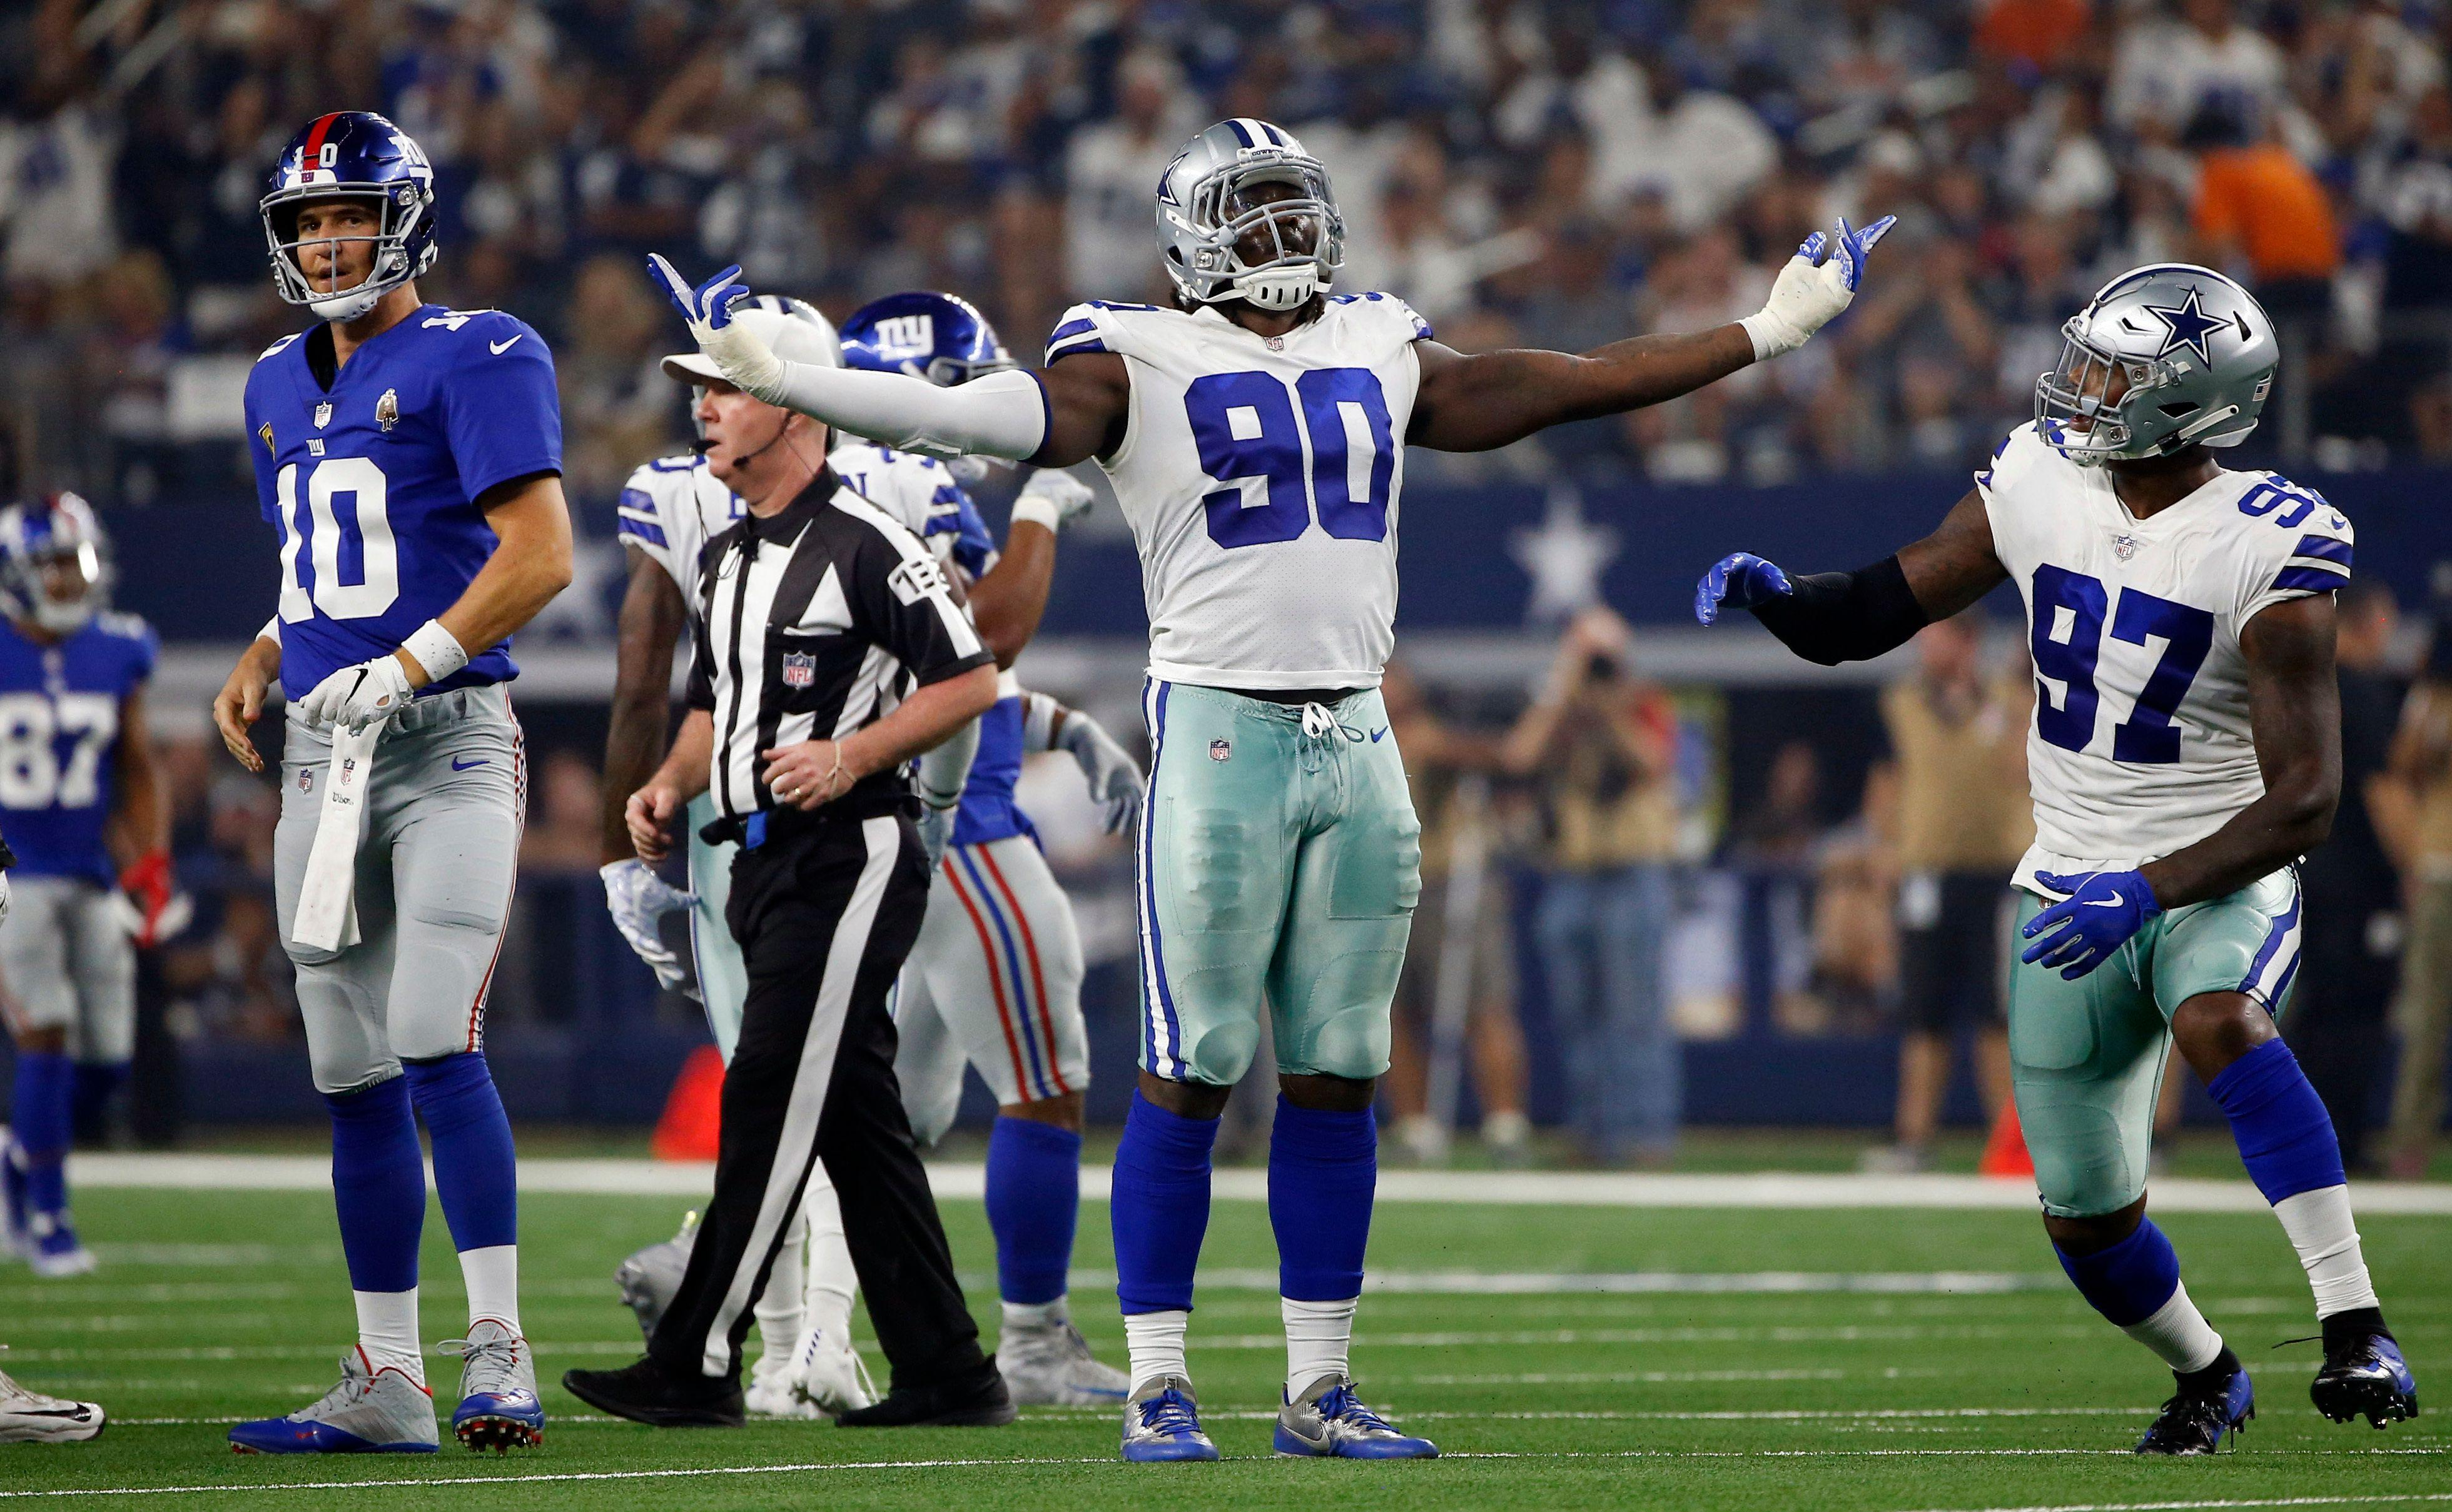 Cowboys' DeMarcus Lawrence has funny reply to notion Eli Manning has 'plenty left'